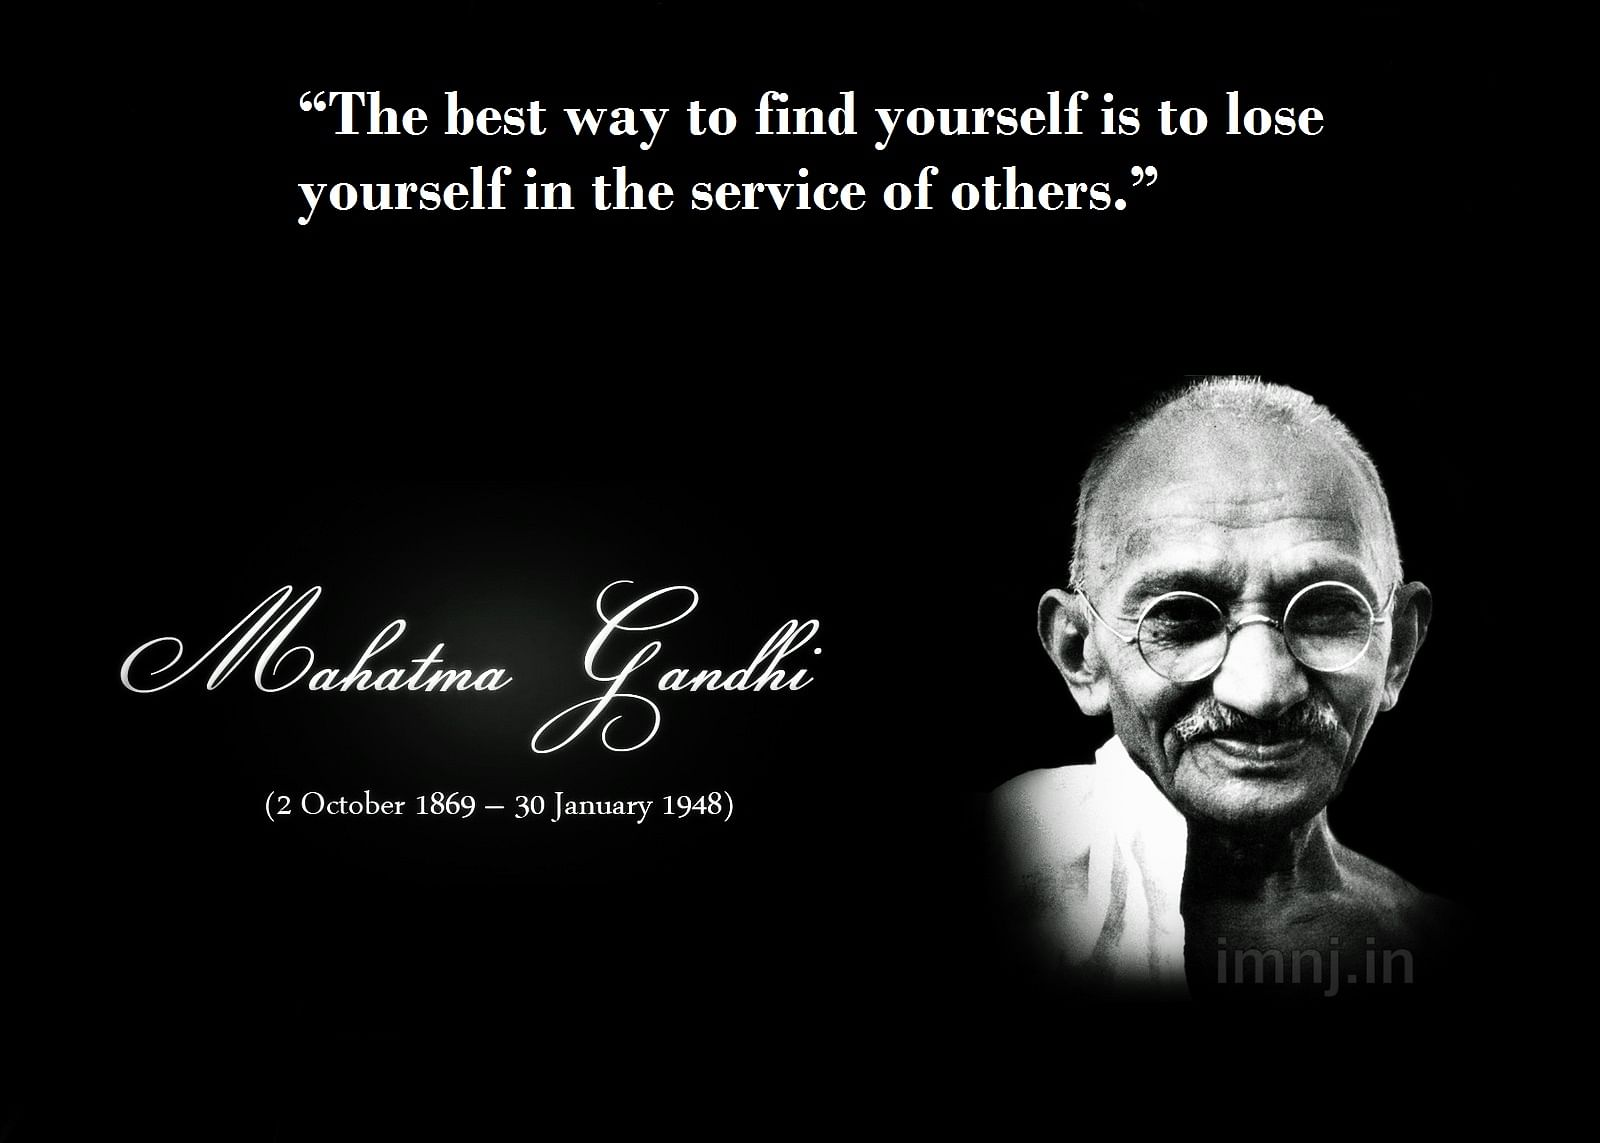 5 Of Our Favourite Quotes By Mahatma Gandhi Which Inspire Us Everyday The Better India